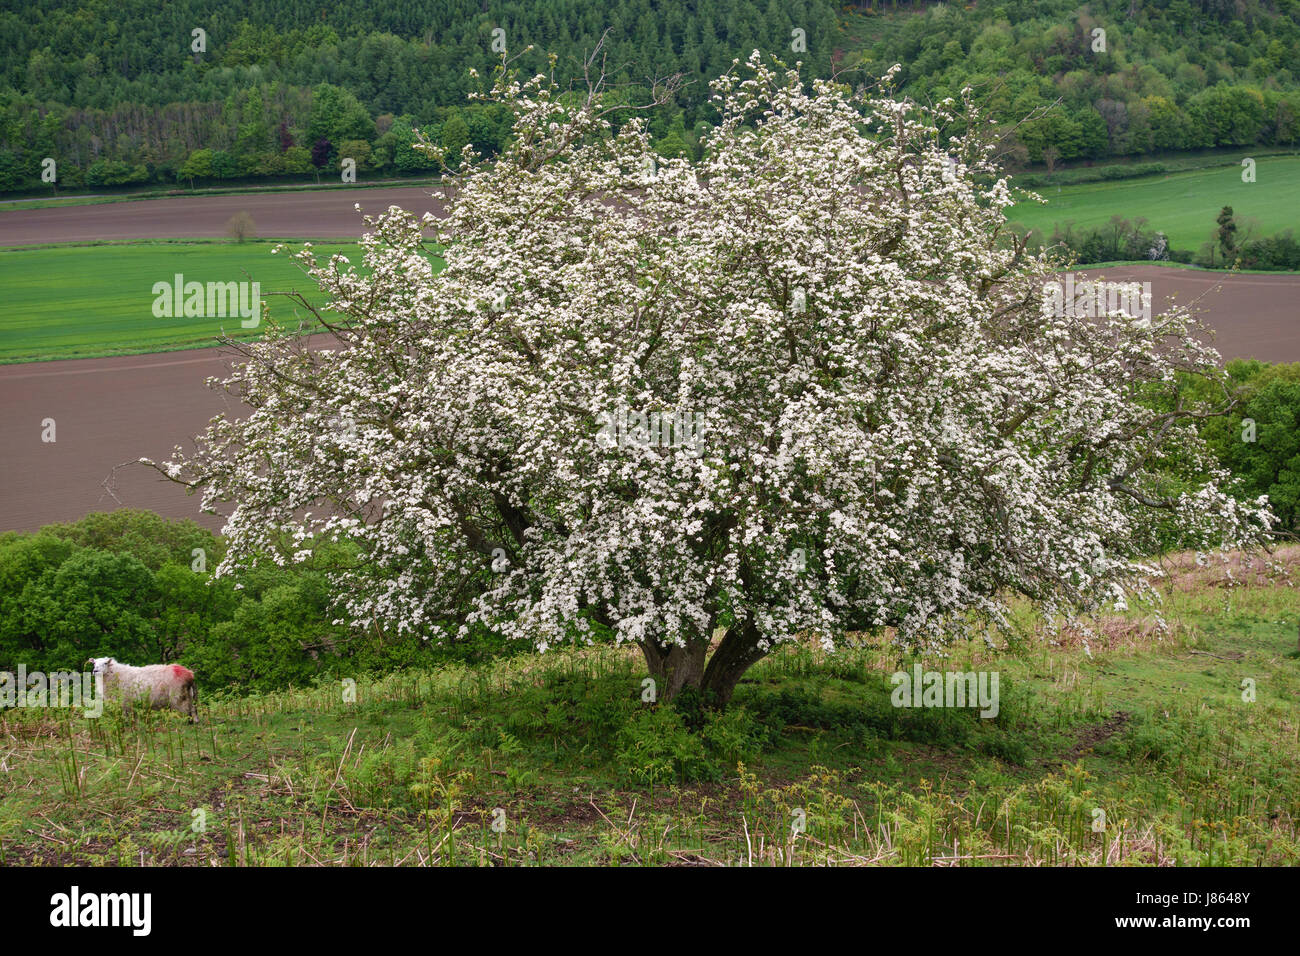 Hawthorn tree (crataegus monogyna), also known as May or whitethorn, in full bloom on Herrock Hill on the Offa's - Stock Image